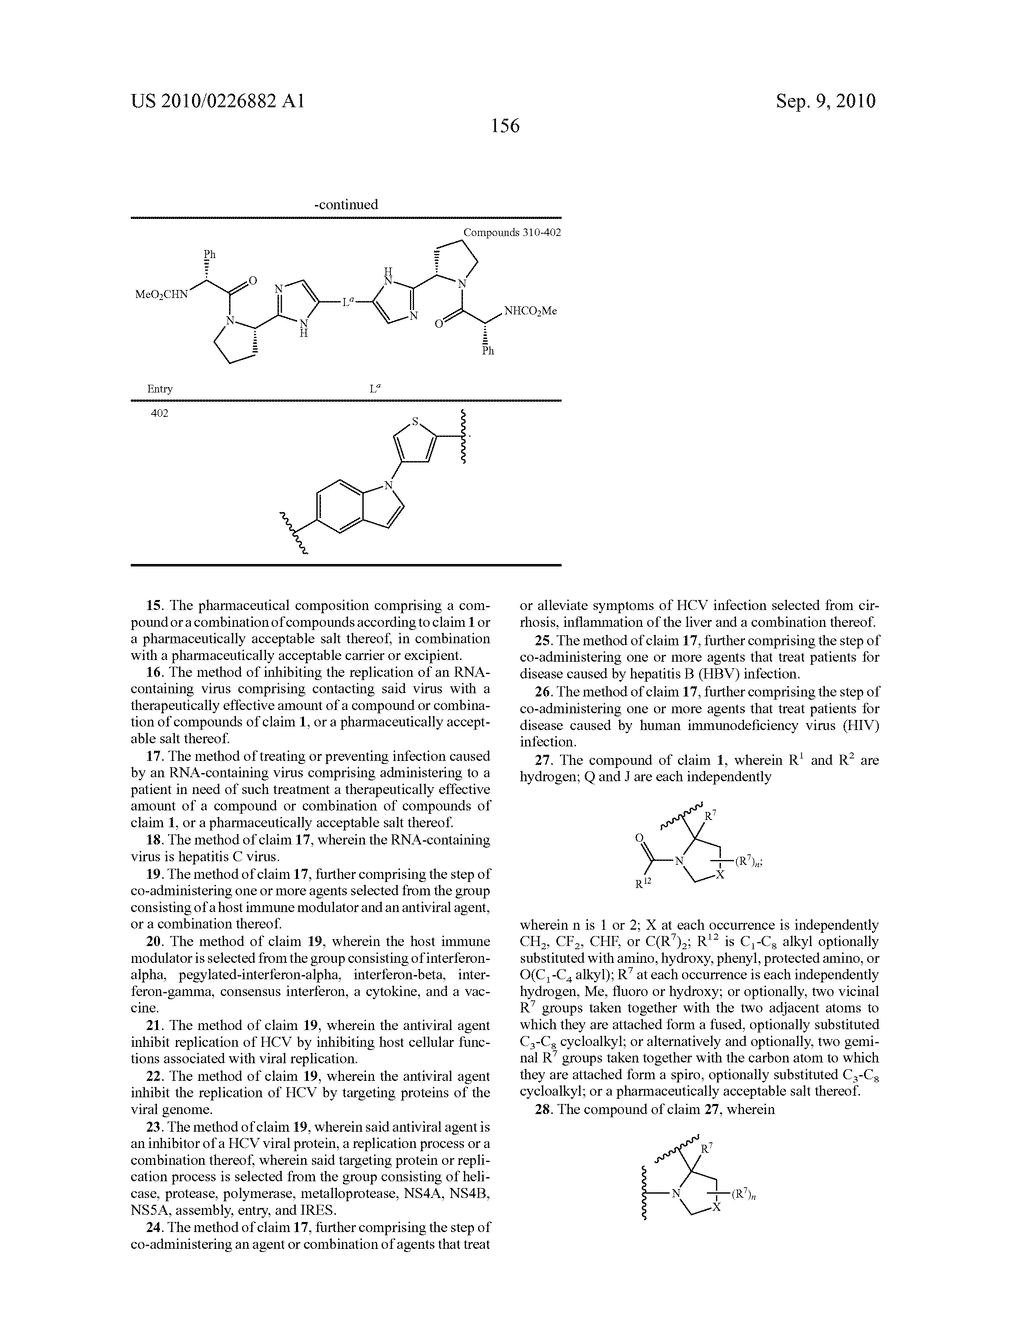 LINKED DIIMIDAZOLE ANTIVIRALS - diagram, schematic, and image 157